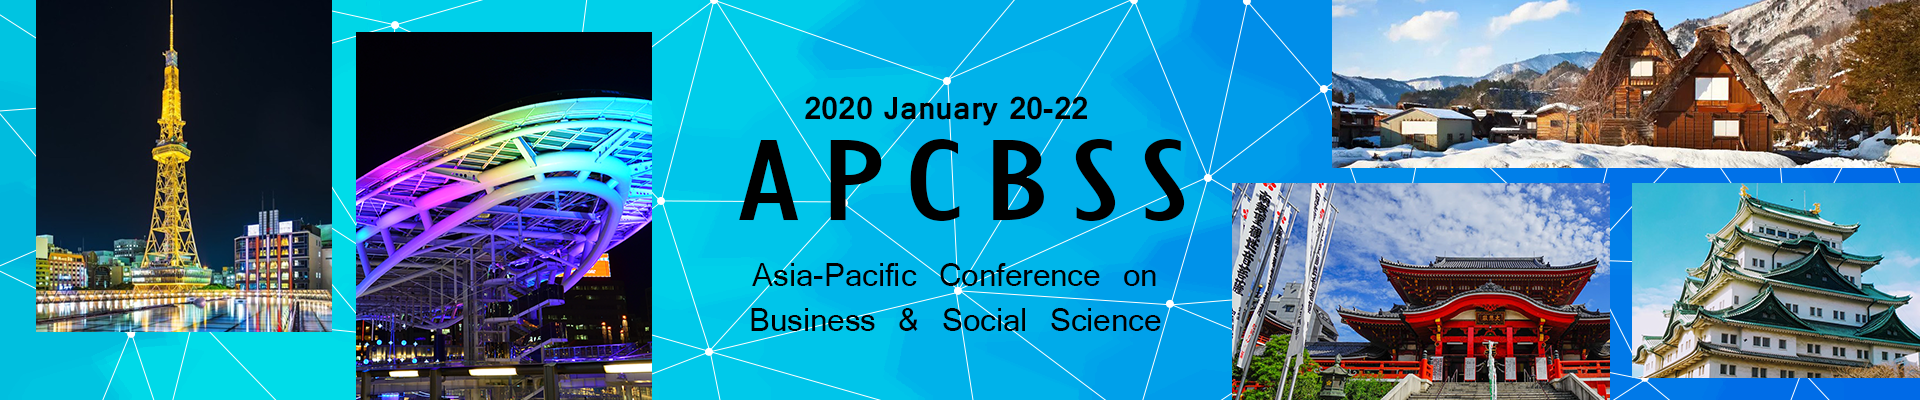 Asia-Pacific Conference on Business & Social Science